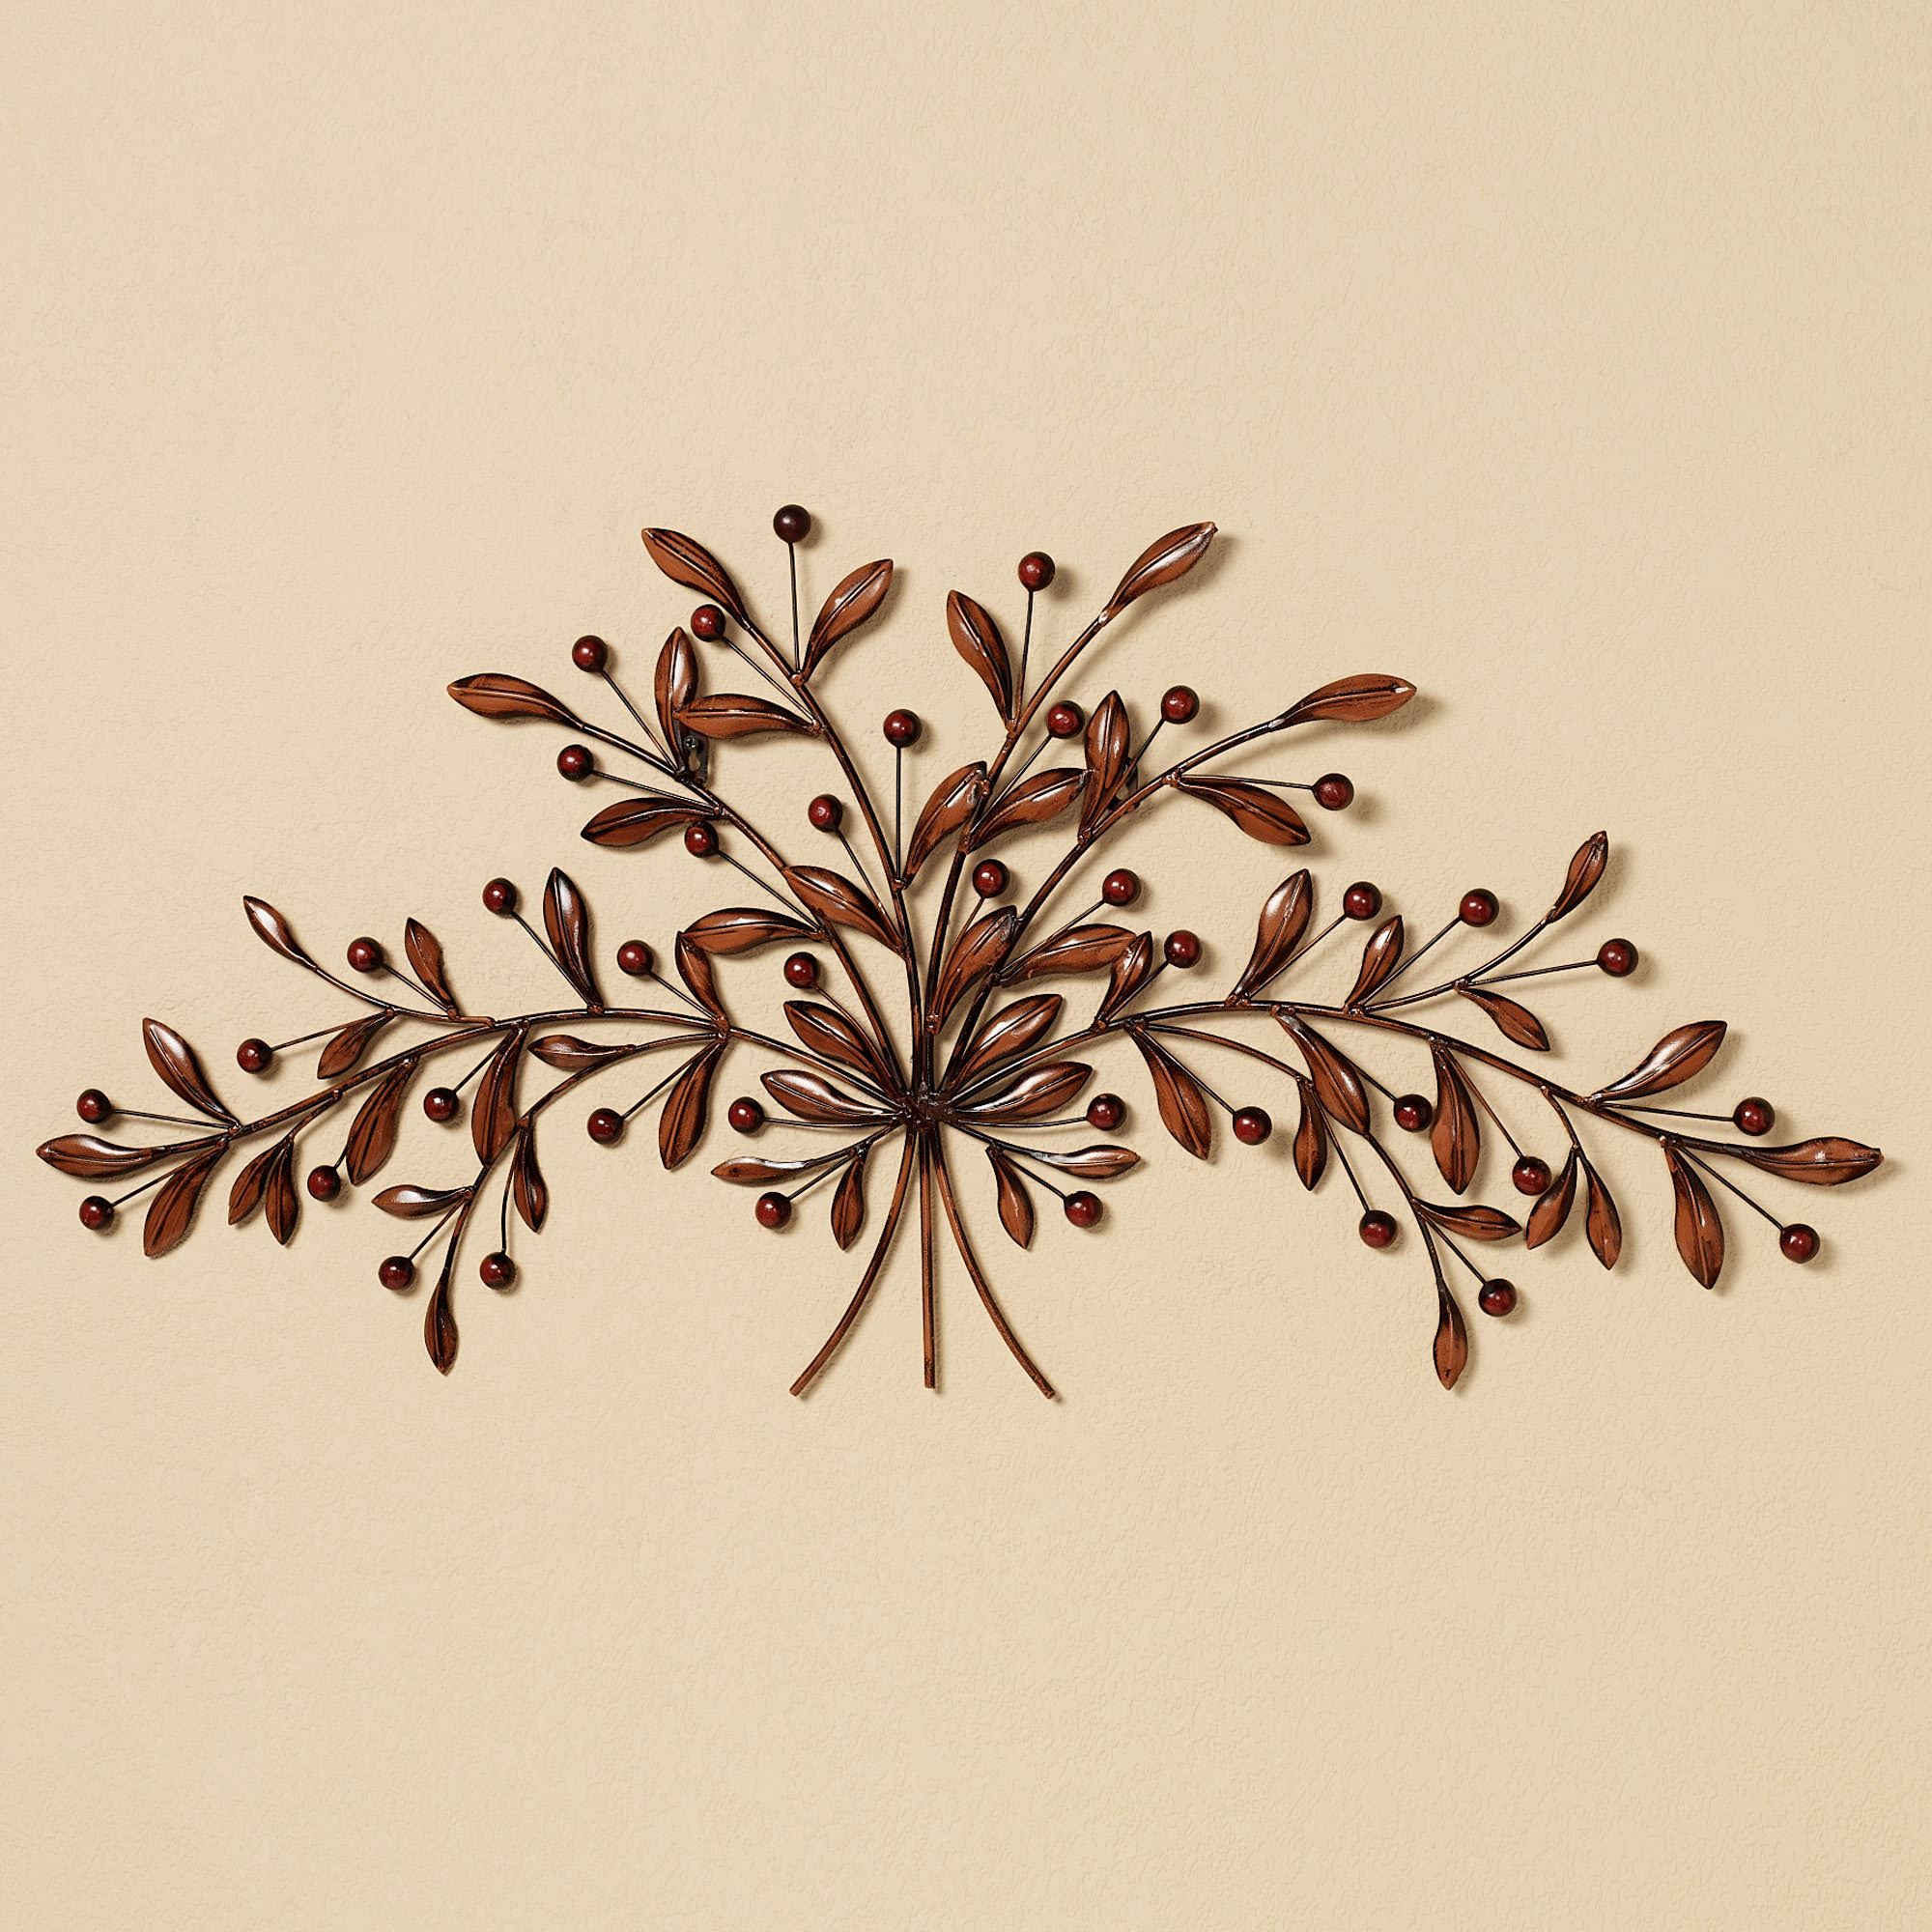 Aufregend Wall Art Metal Leaves Nautical Branch Flowers with regard to Leaves Metal Sculpture Wall Decor (Image 7 of 30)